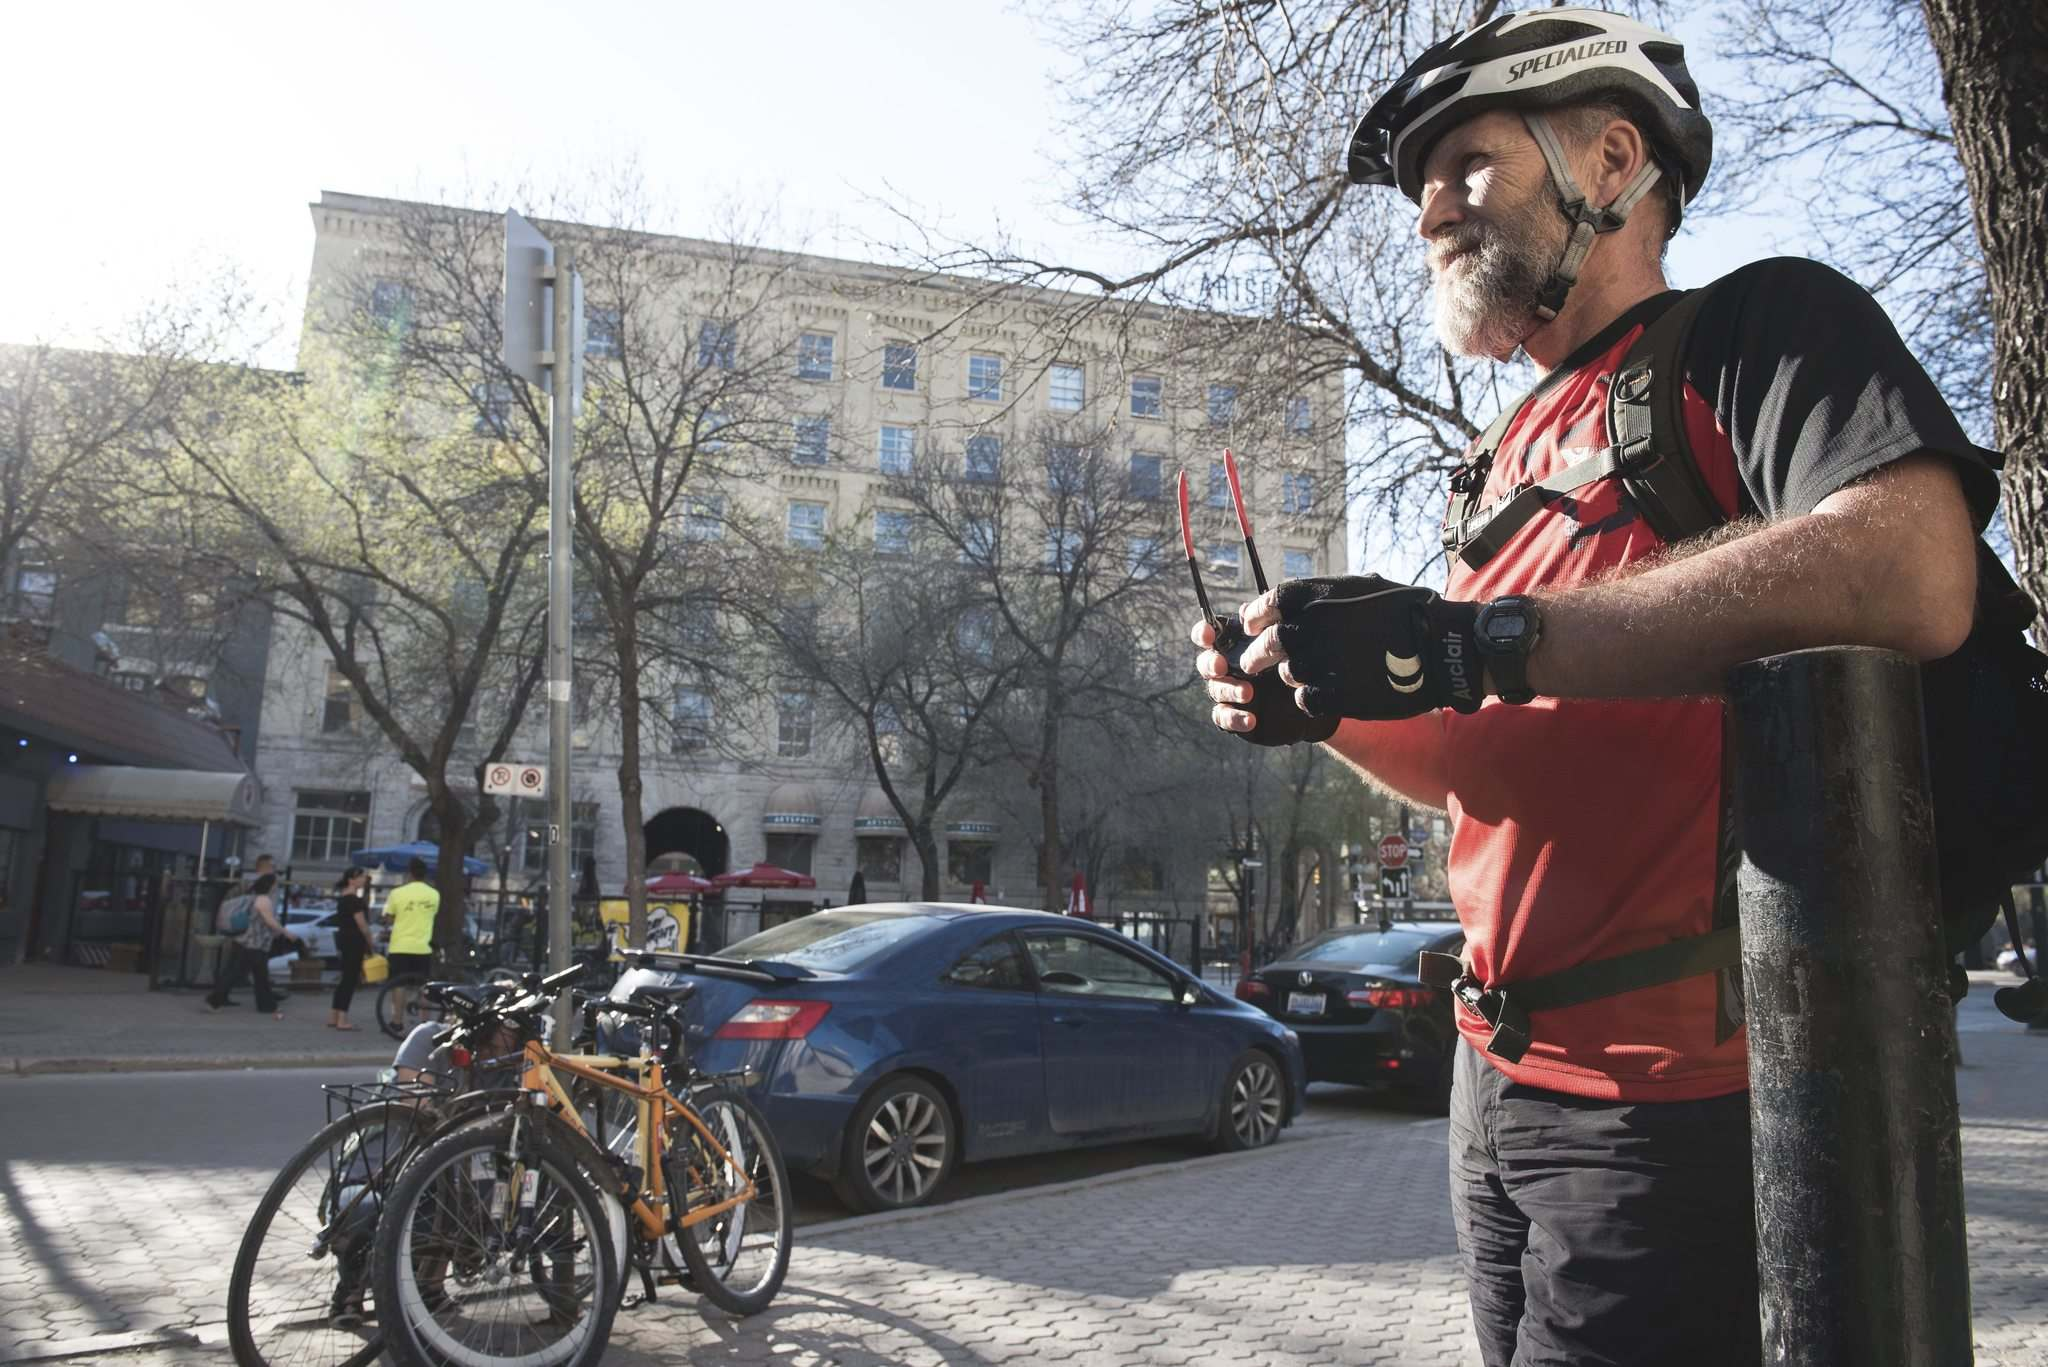 Jim Thomas, a long-time cycling proponent in Winnipeg, believes Bike Jam not only promotes a mode of trasportation, it builds community.</p>